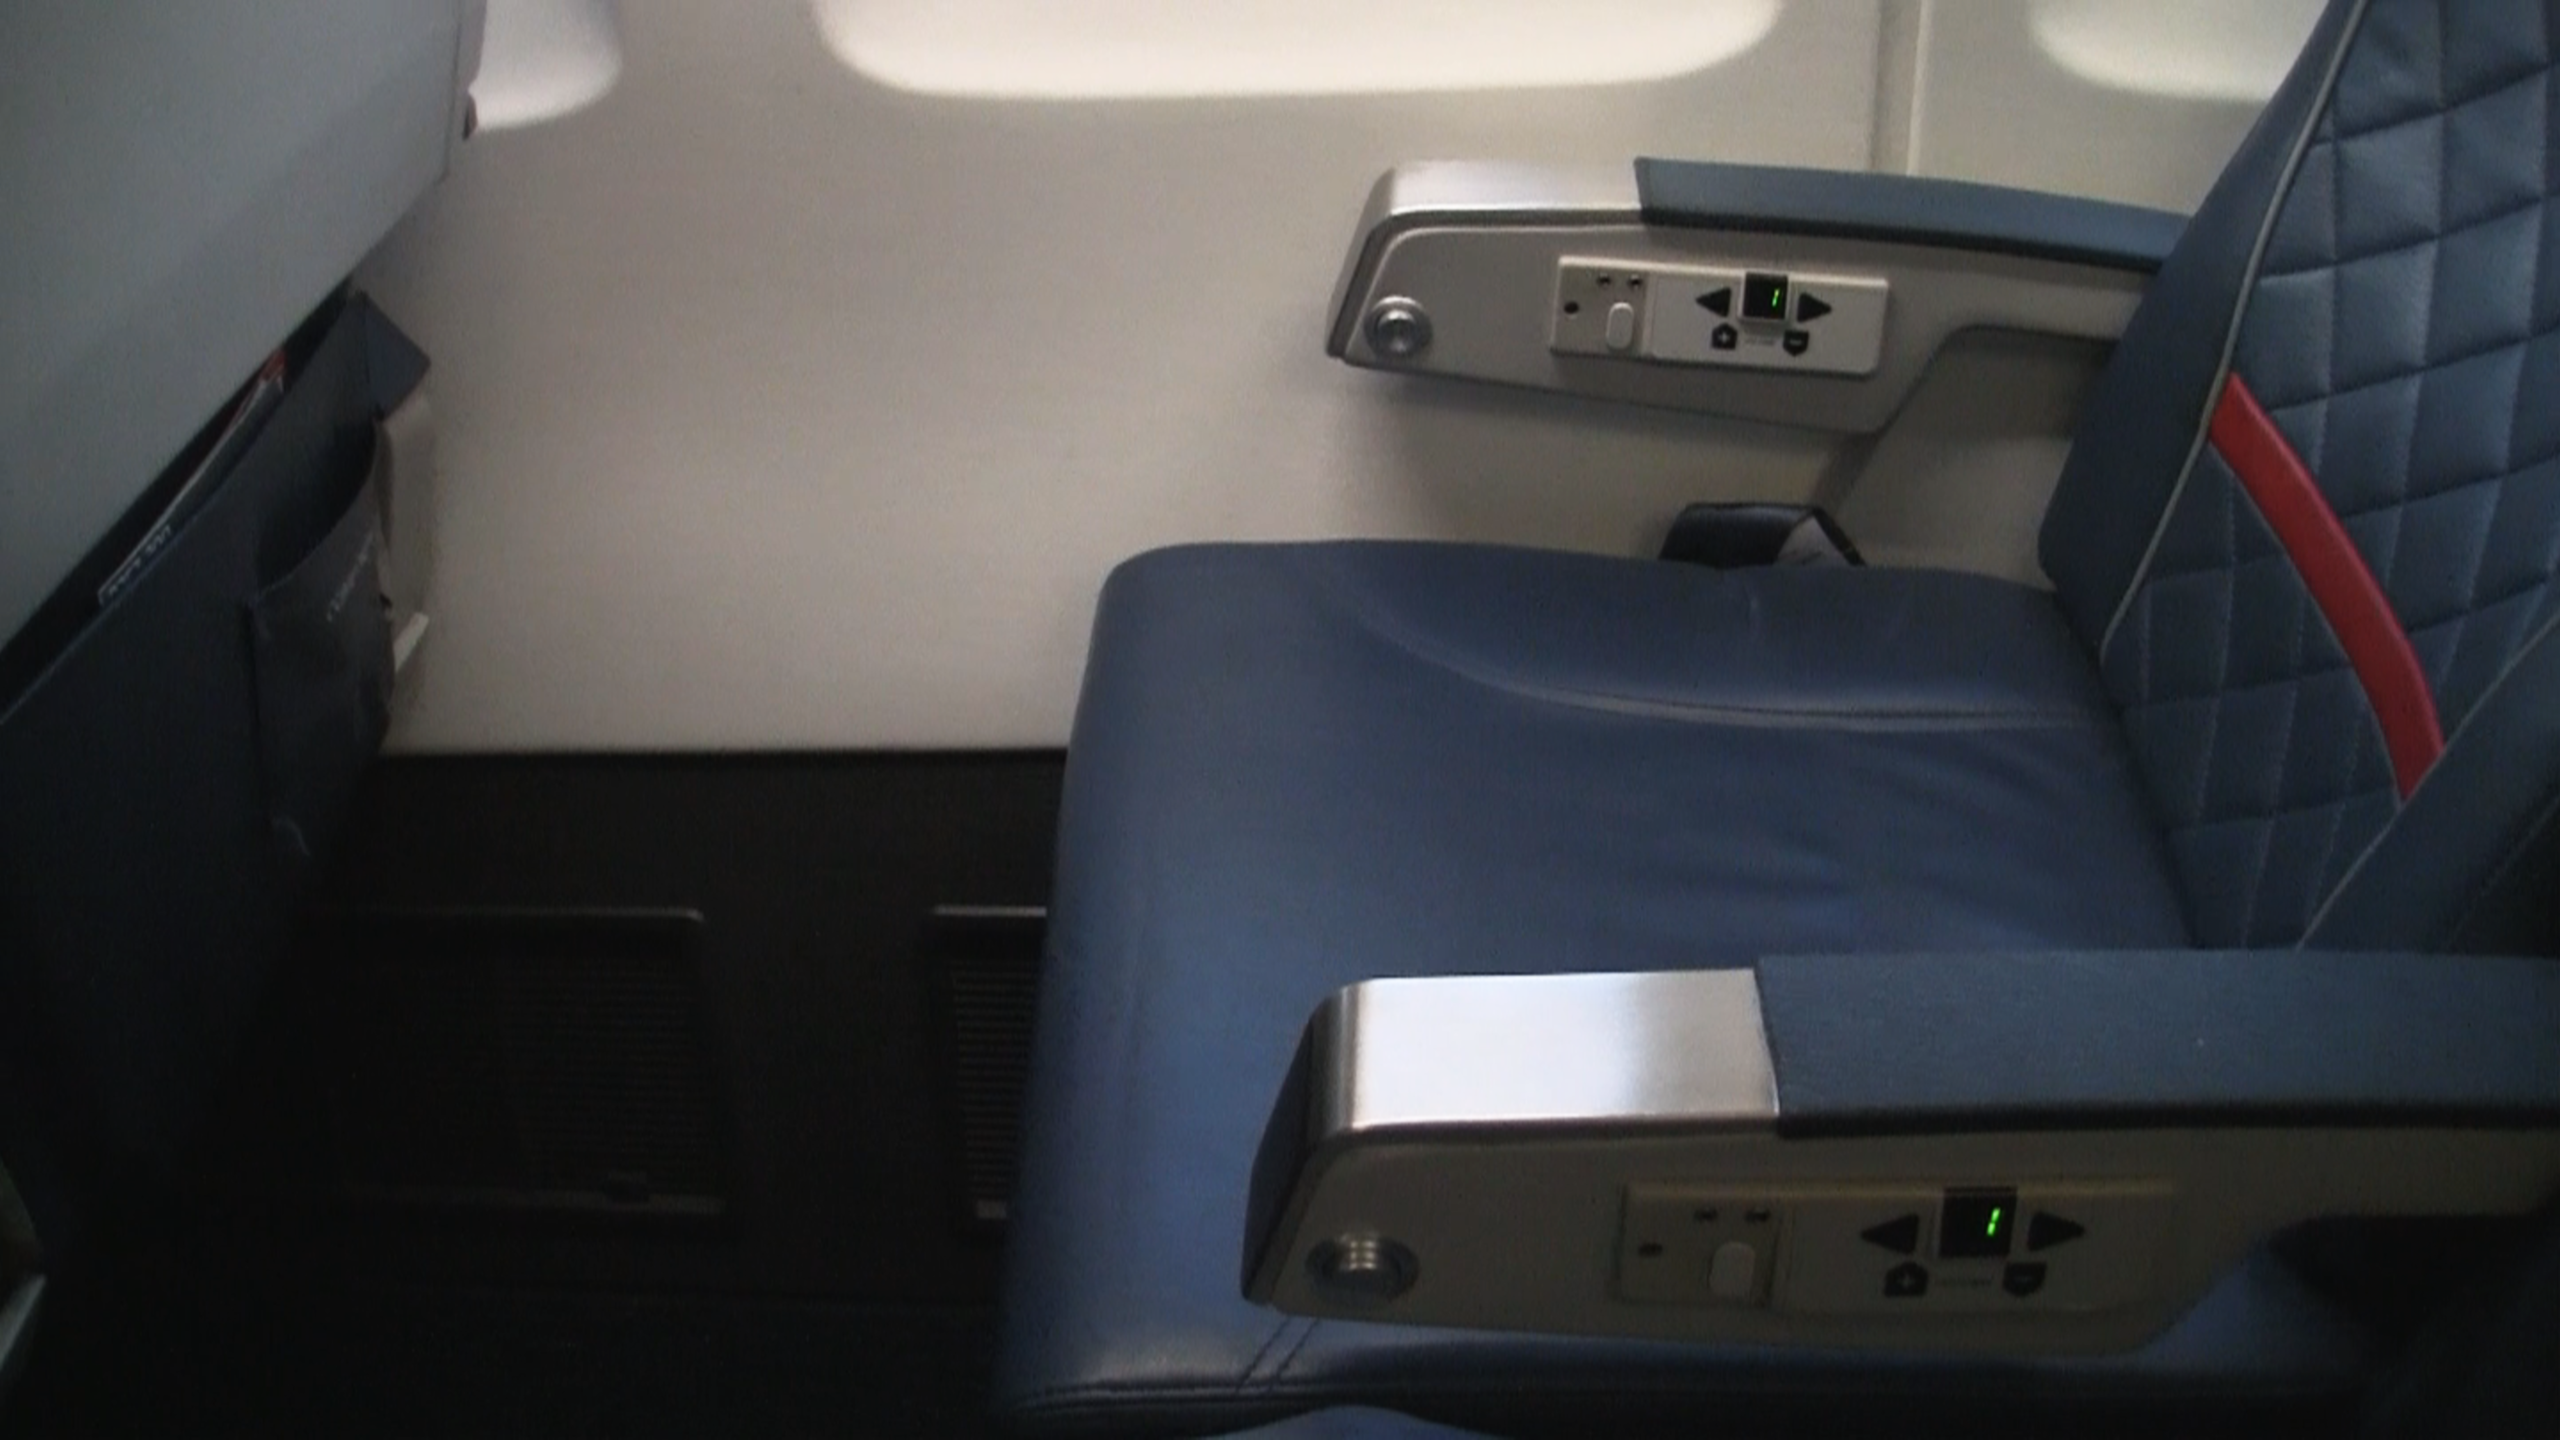 Legs get inches, hips get zip in this version of Delta 757 seating in Comfort+